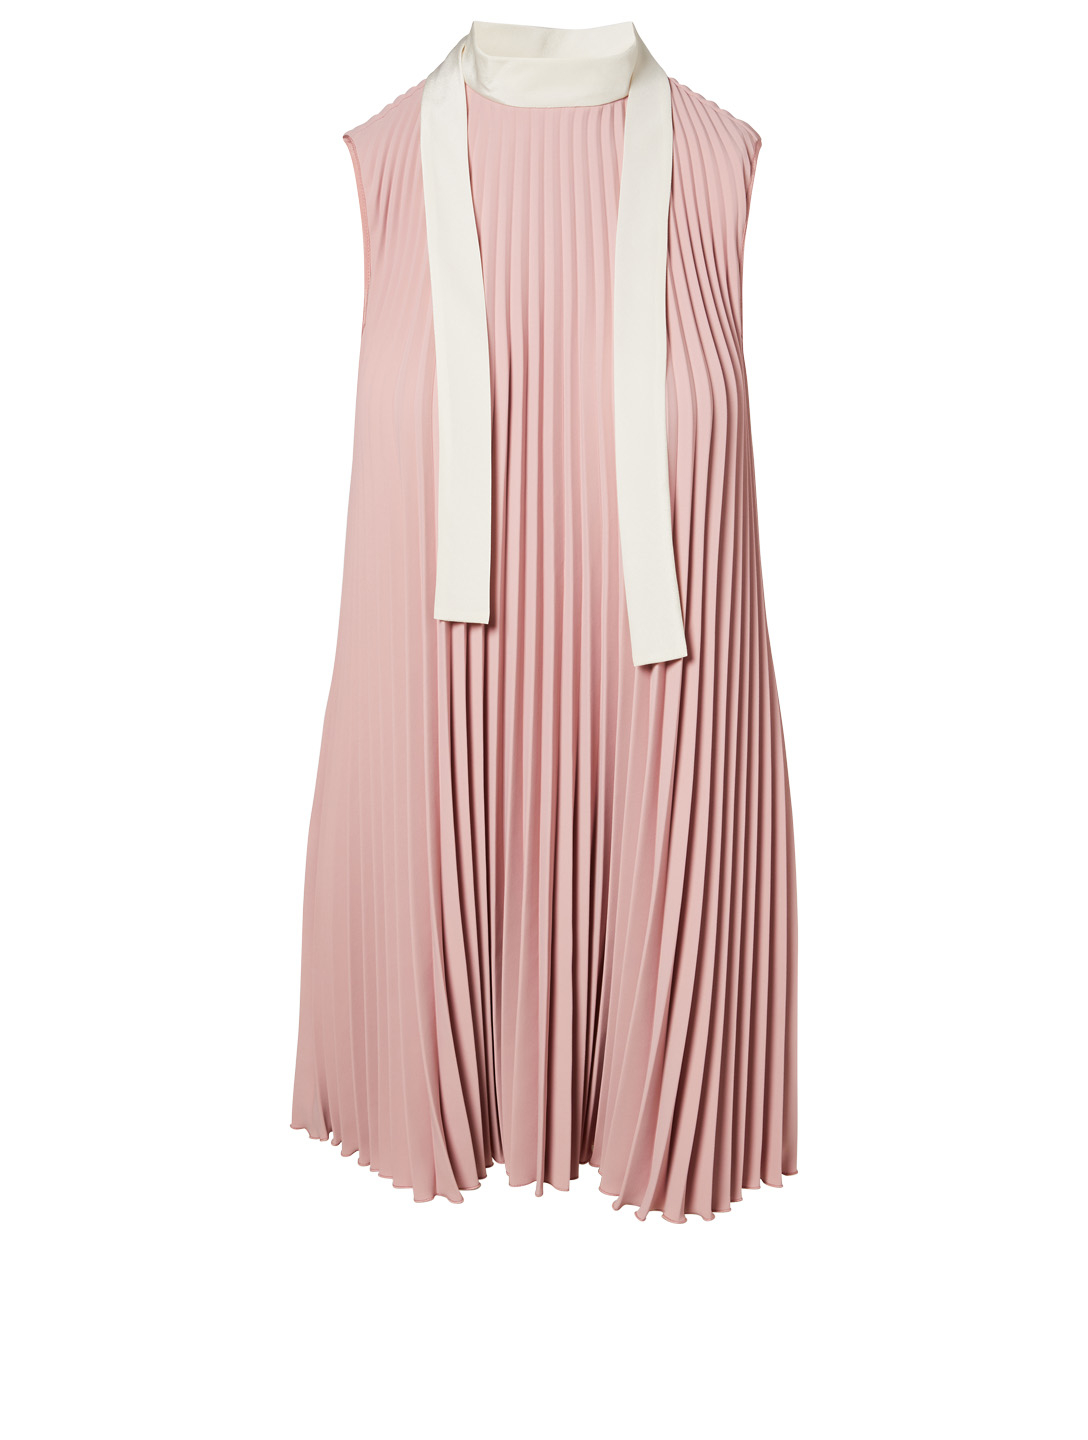 6d204fc8b98a RED VALENTINO Techno Fluid Pleated Dress With Neck Tie